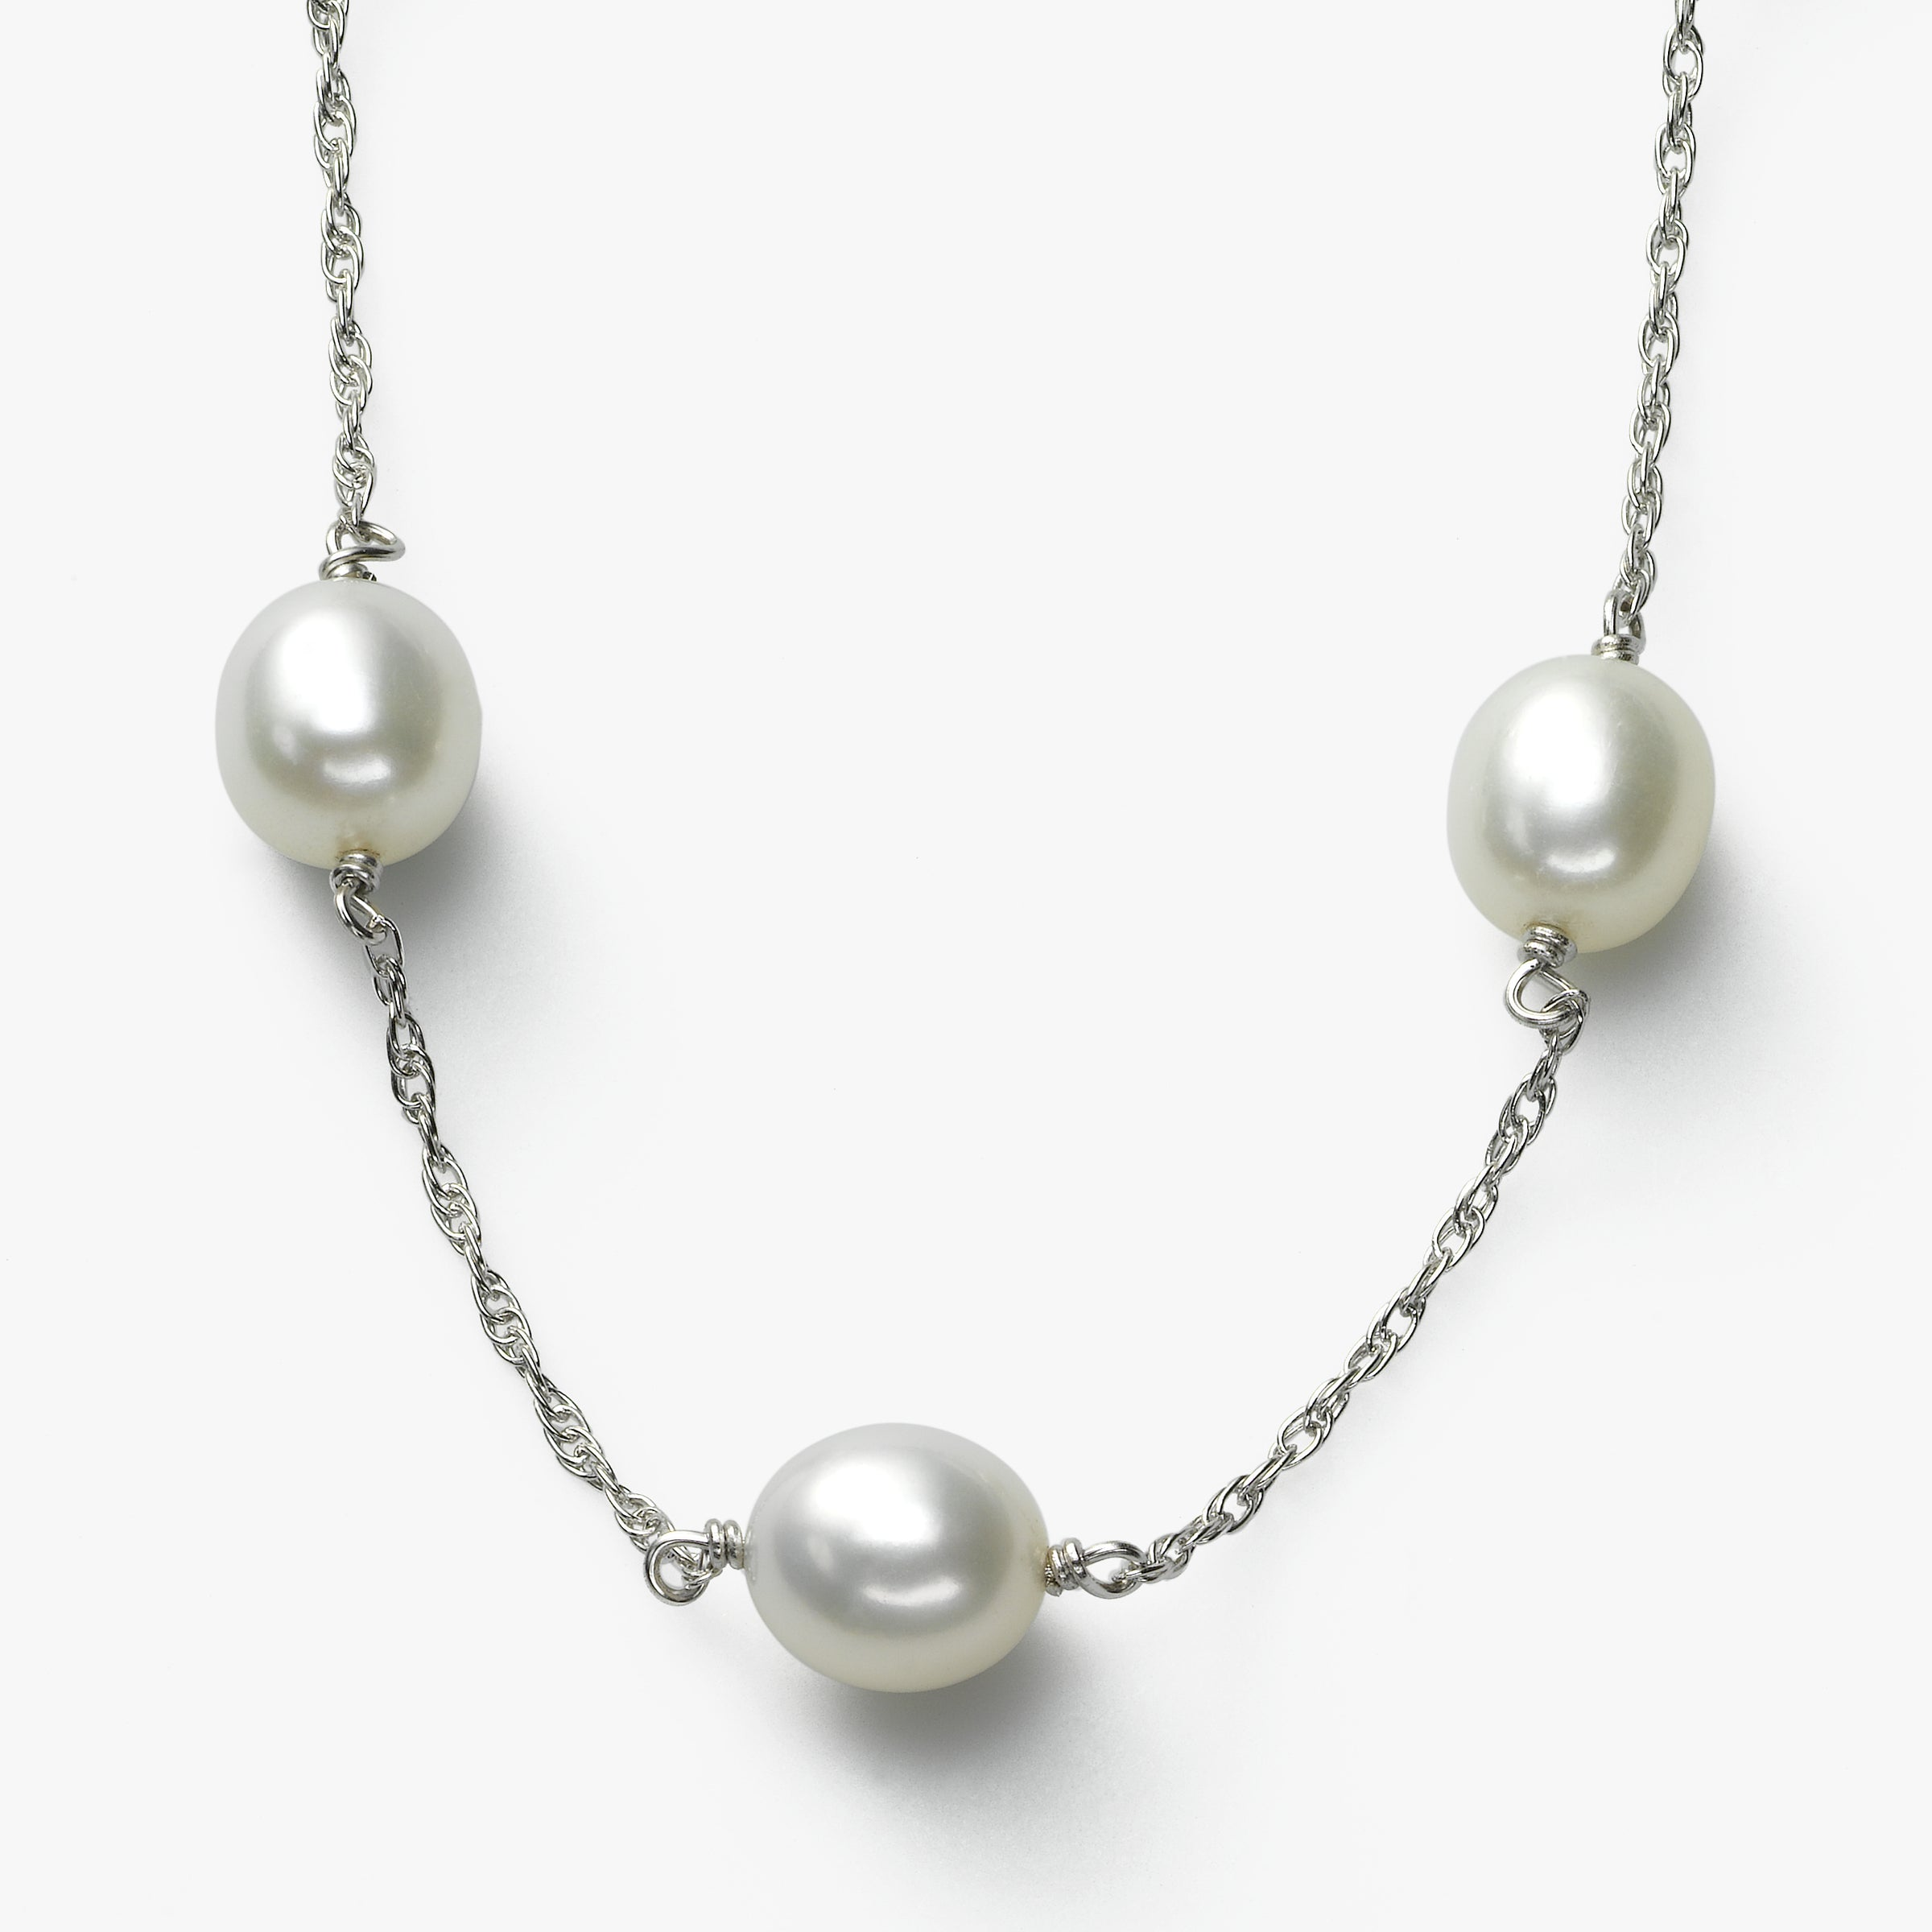 White Freshwater Cultured Pearls, 17 inches, Sterling Silver